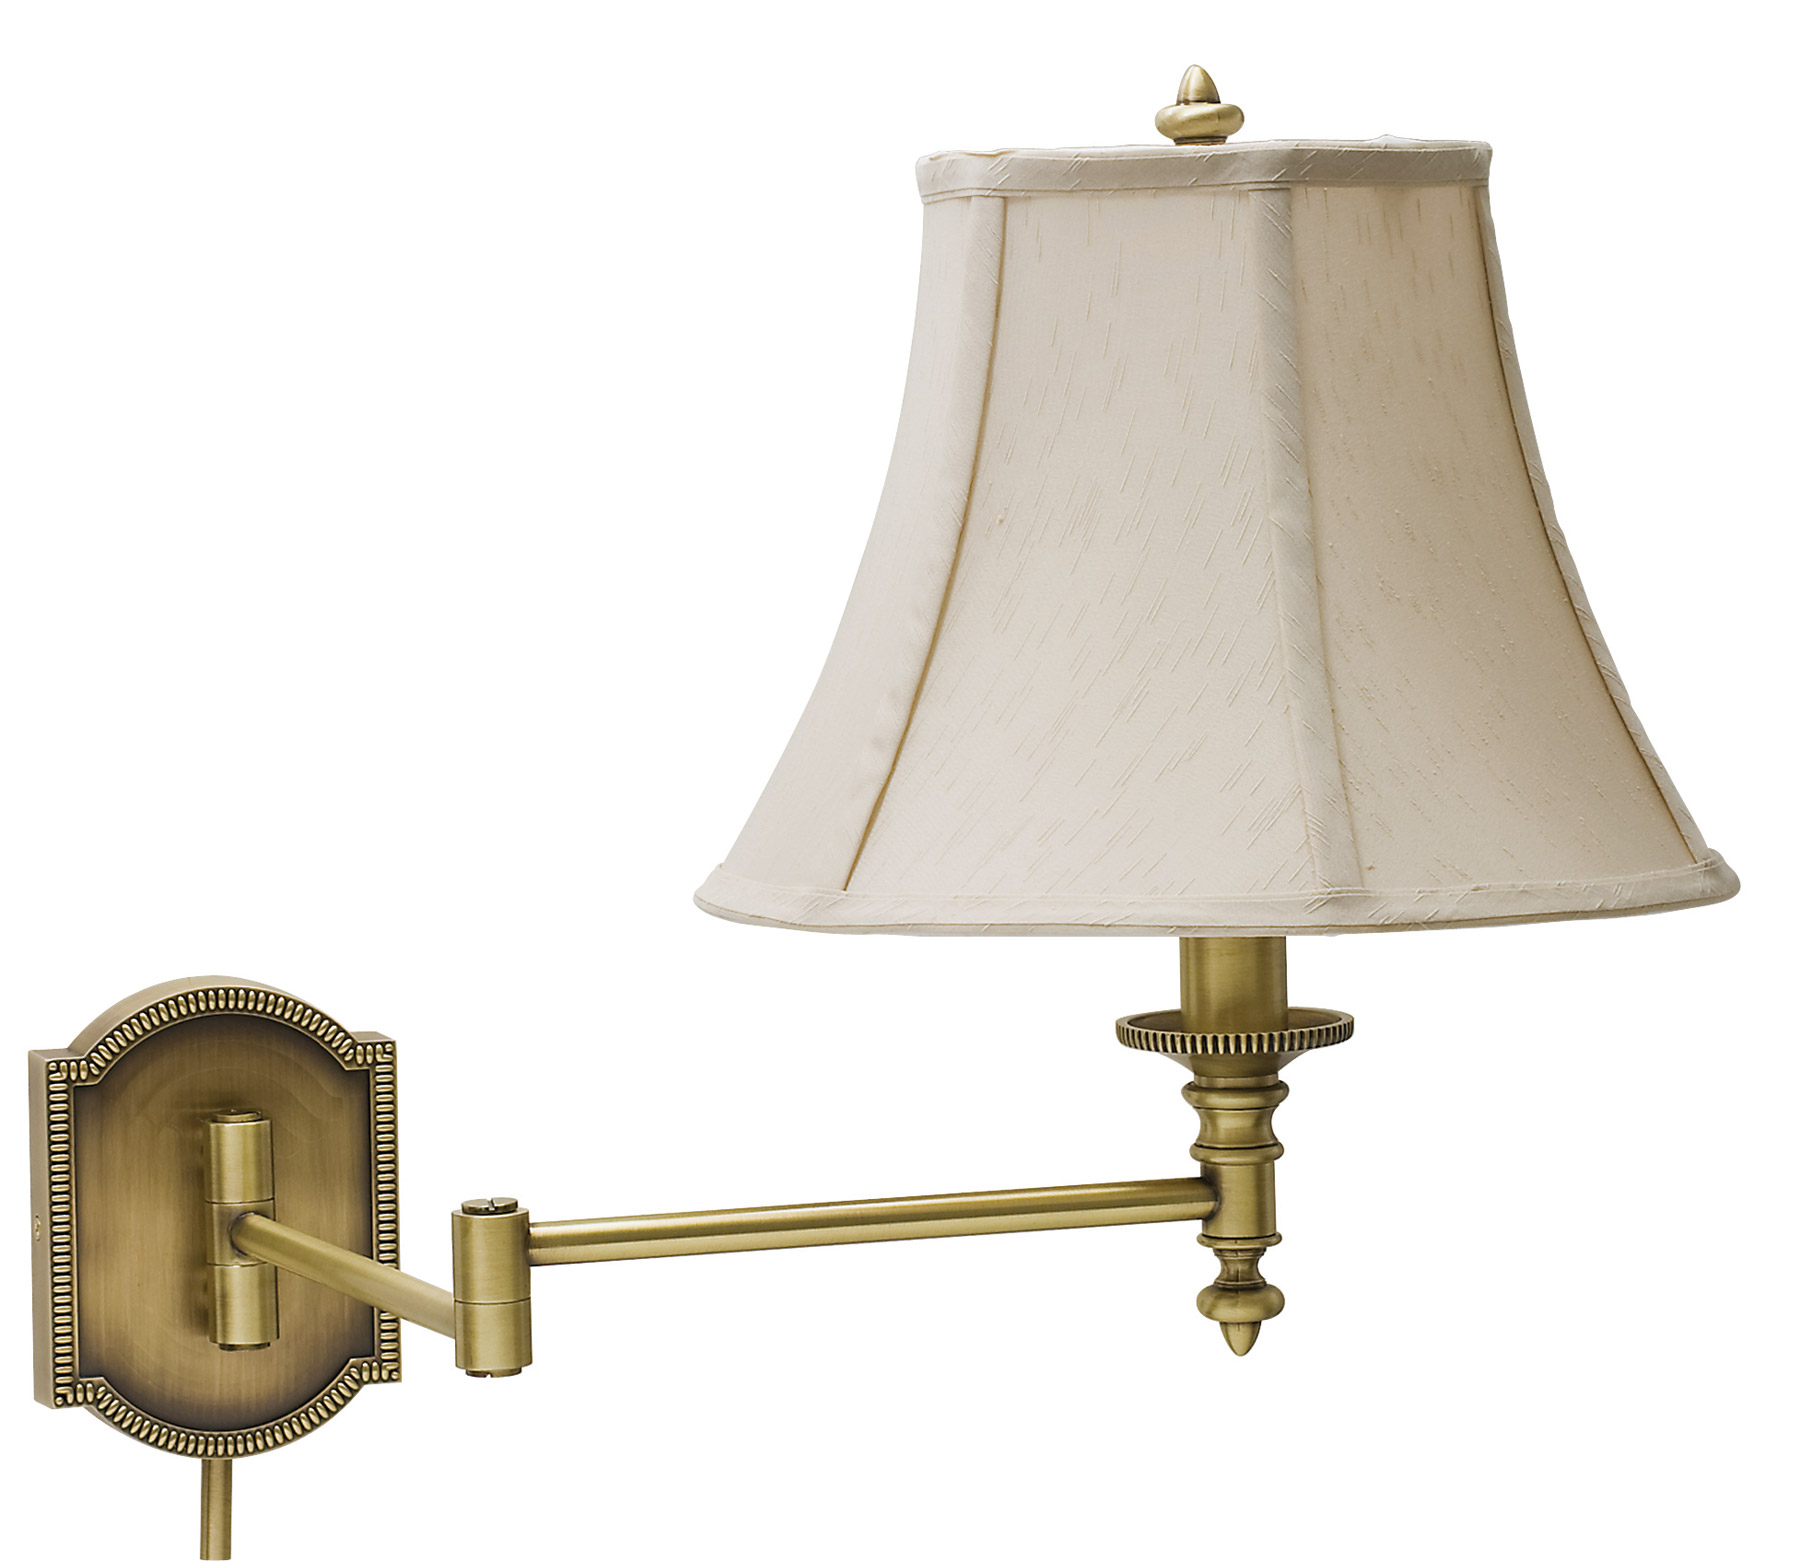 wall lighting swing arm and wall lamps house of troy ws761 ab. Black Bedroom Furniture Sets. Home Design Ideas